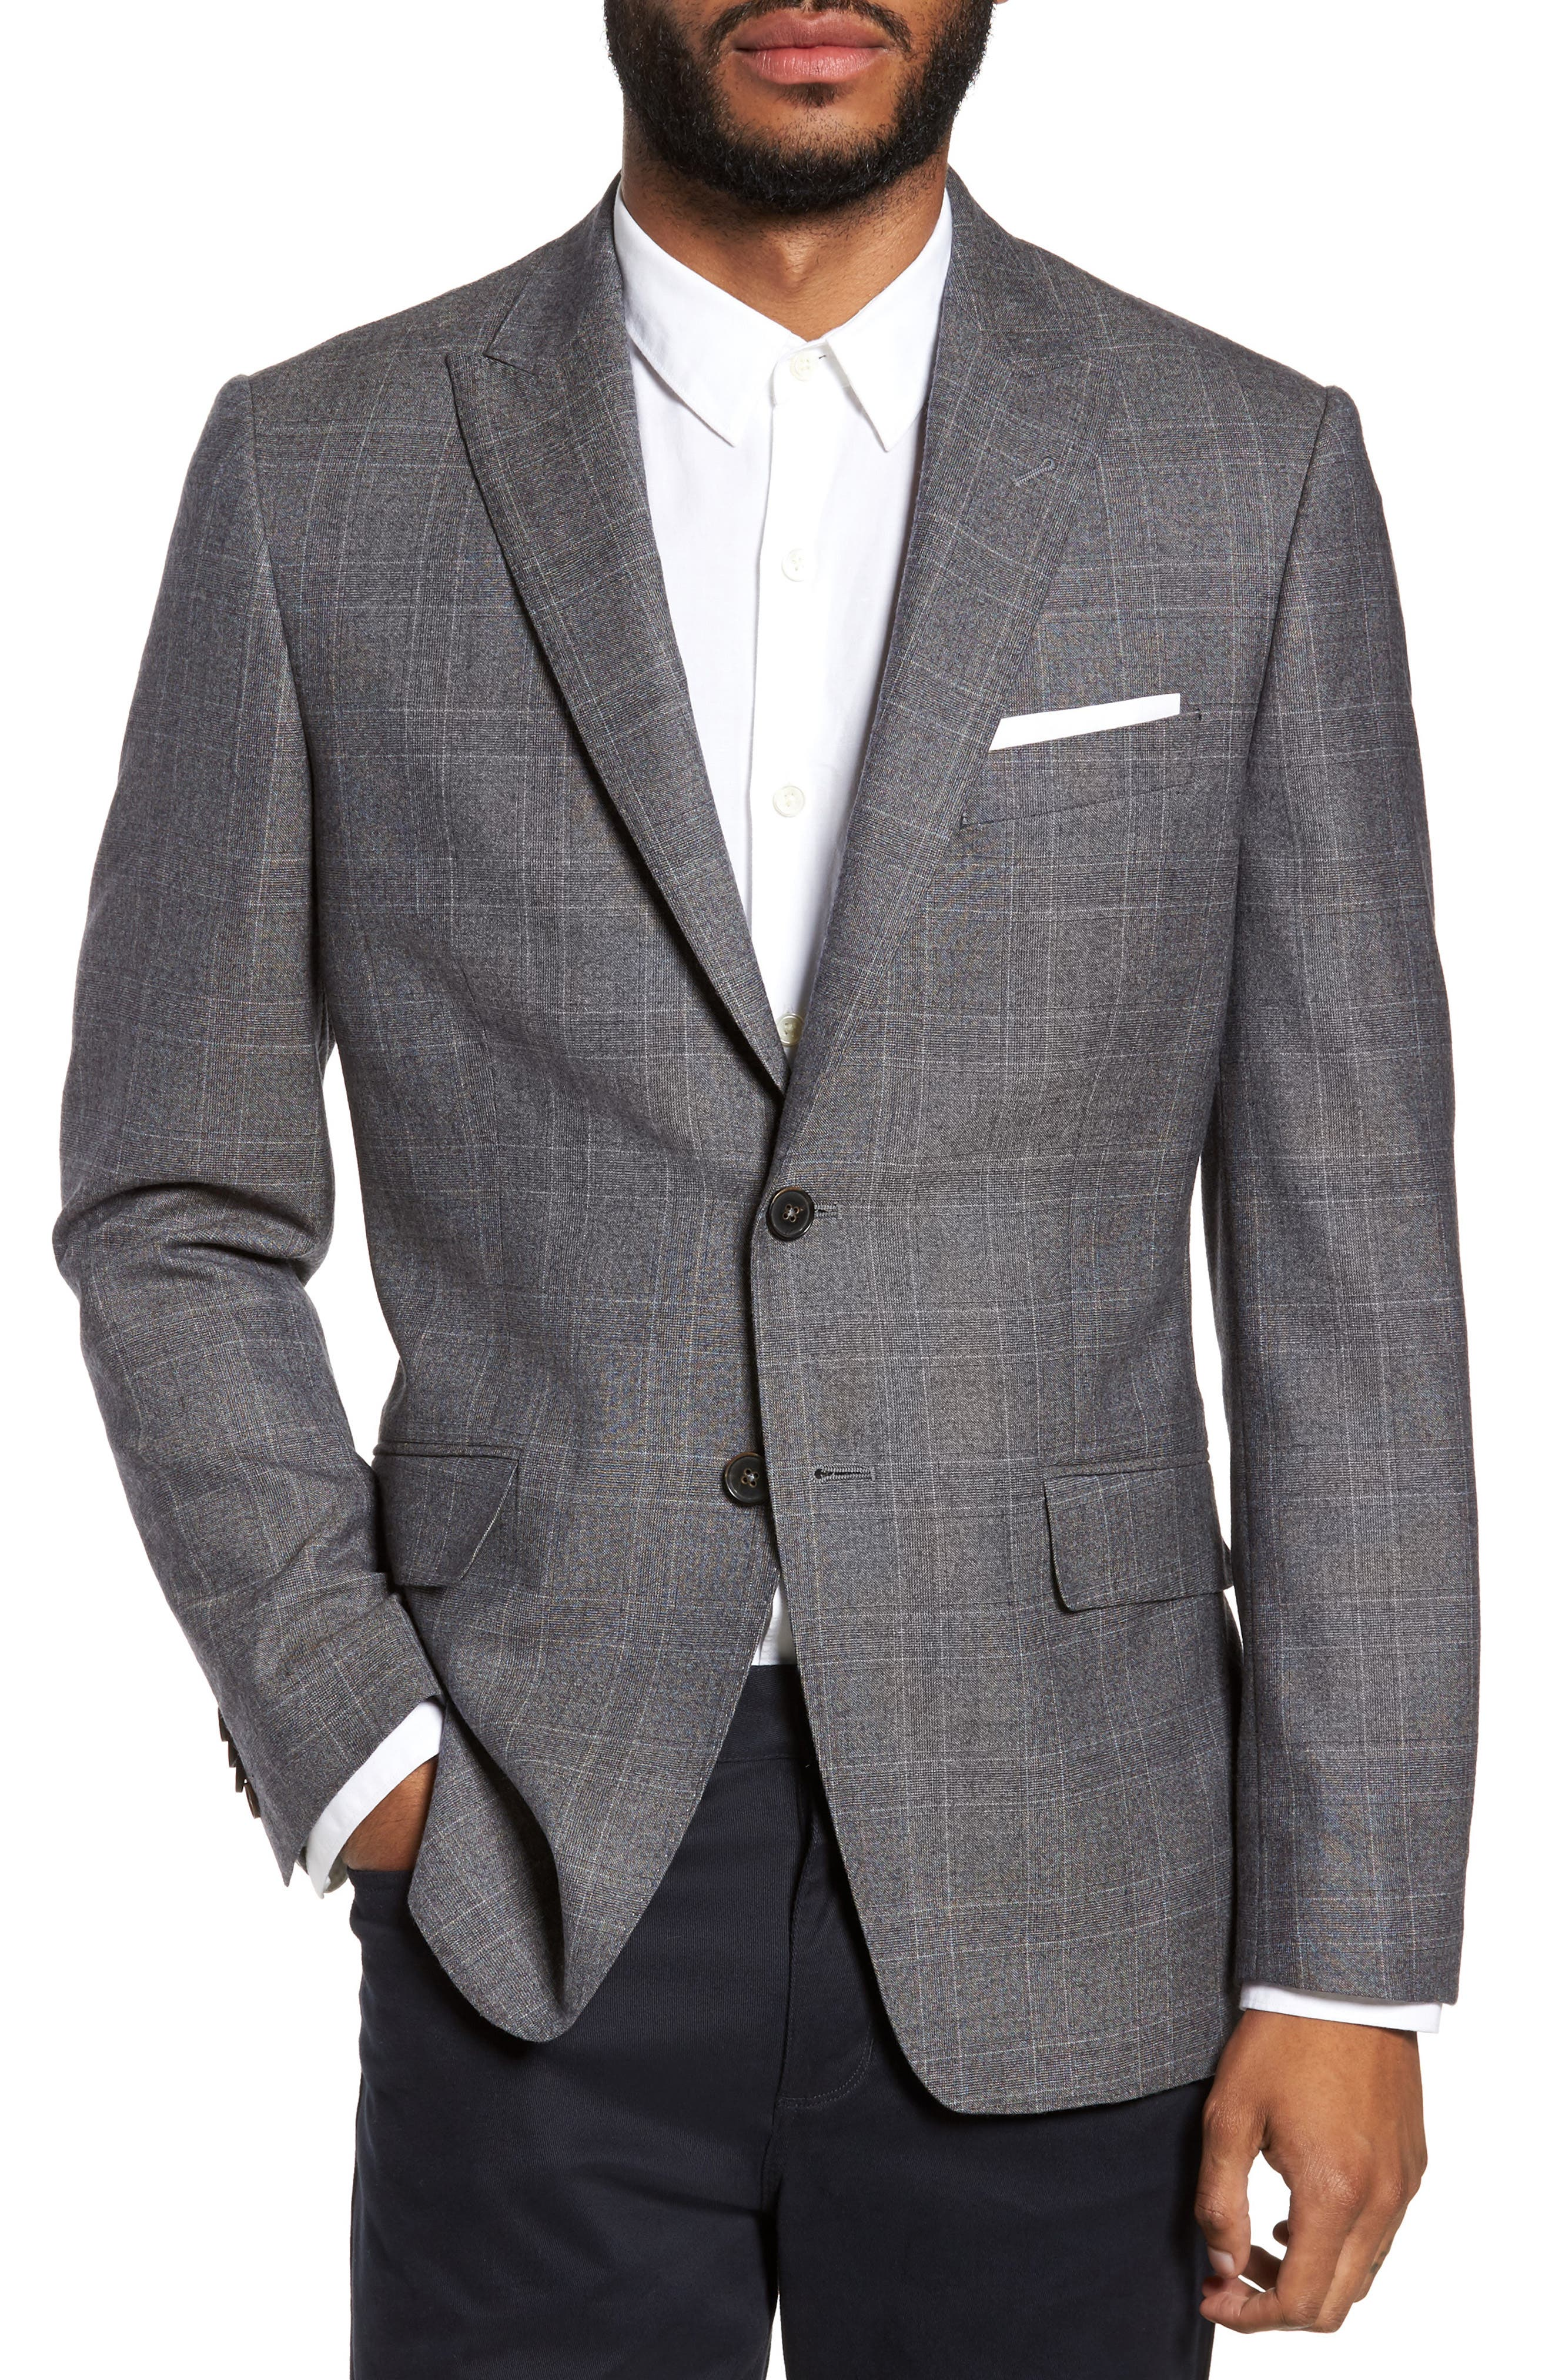 Gryning Trim Fit Plaid Wool Blend Sport Coat,                         Main,                         color, Quiet Gray